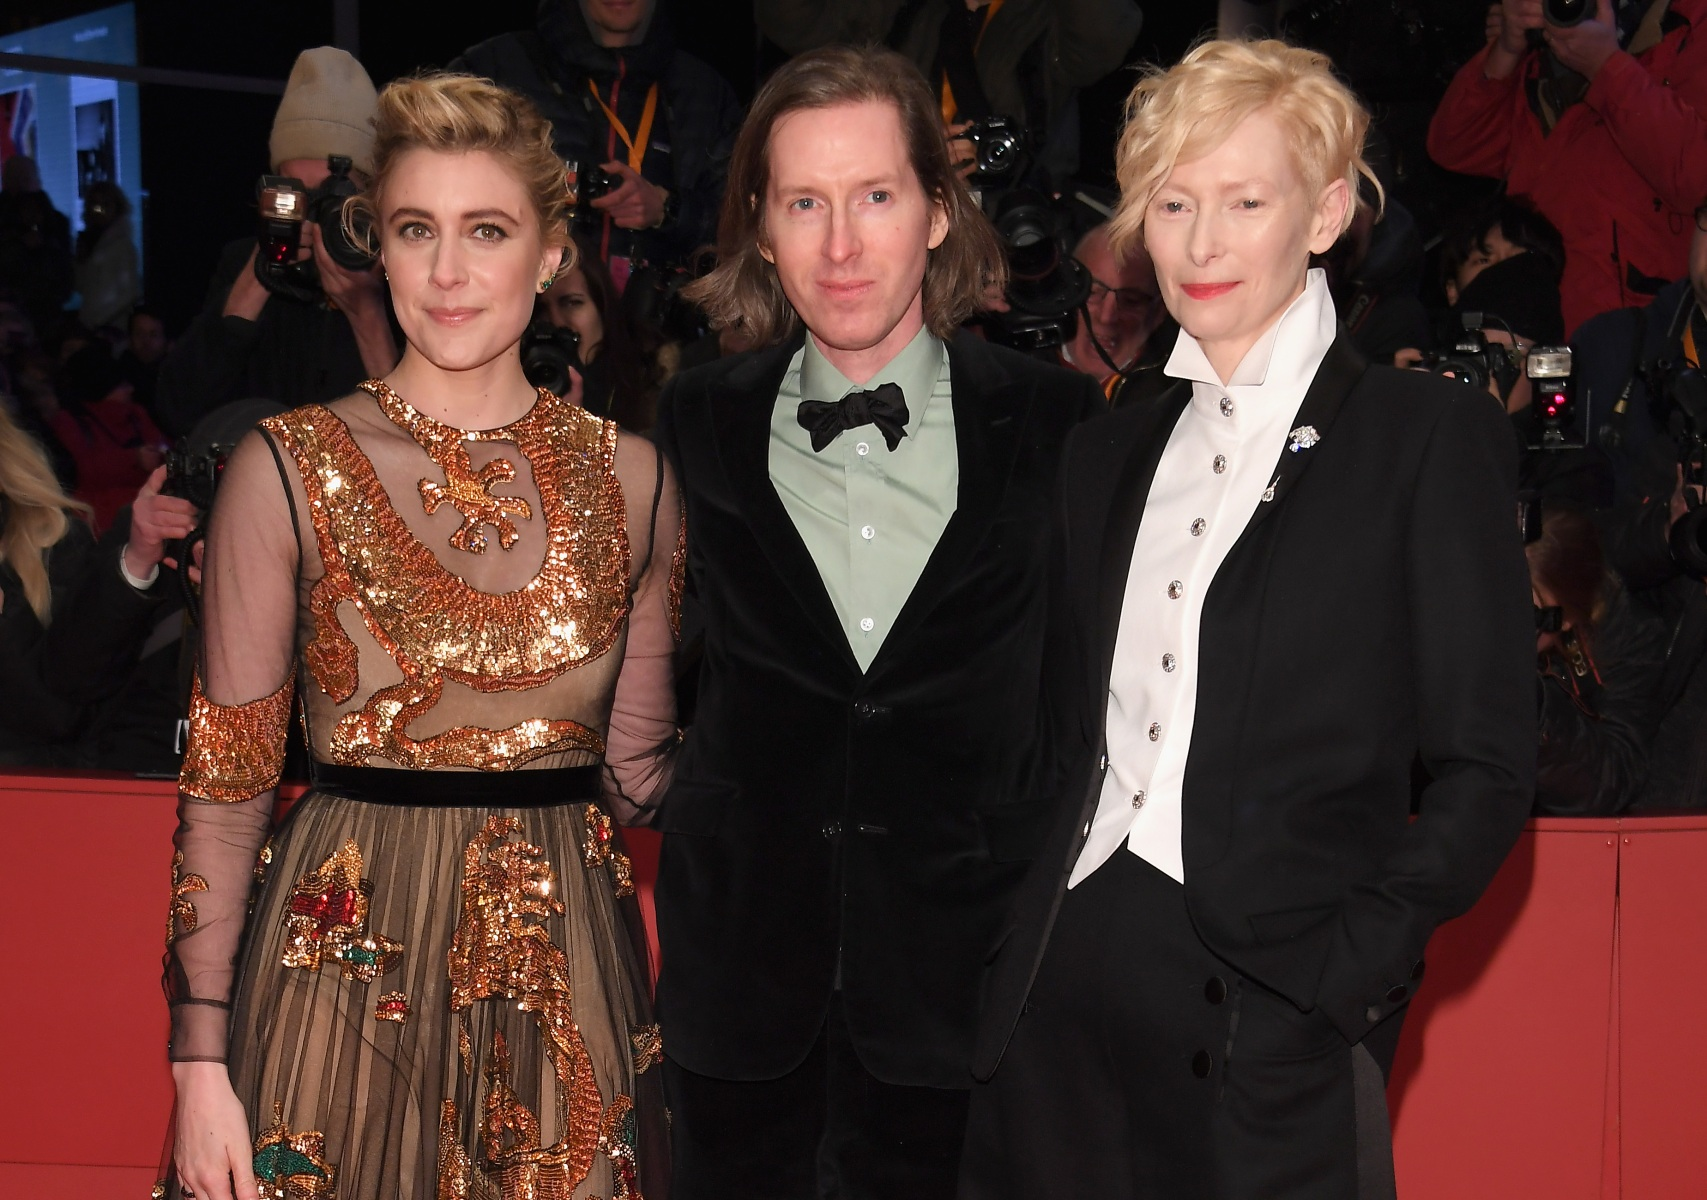 Greta Gerwig, Wes Anderson and Tilda Swinton attend the Opening Ceremony & 'Isle of Dogs' premiere during the 68th Berlinale International Film Festival Berlin at Berlinale Palace on February 15, 2018 in Berlin, Germany.  (Dominique Charriau/WireImage)